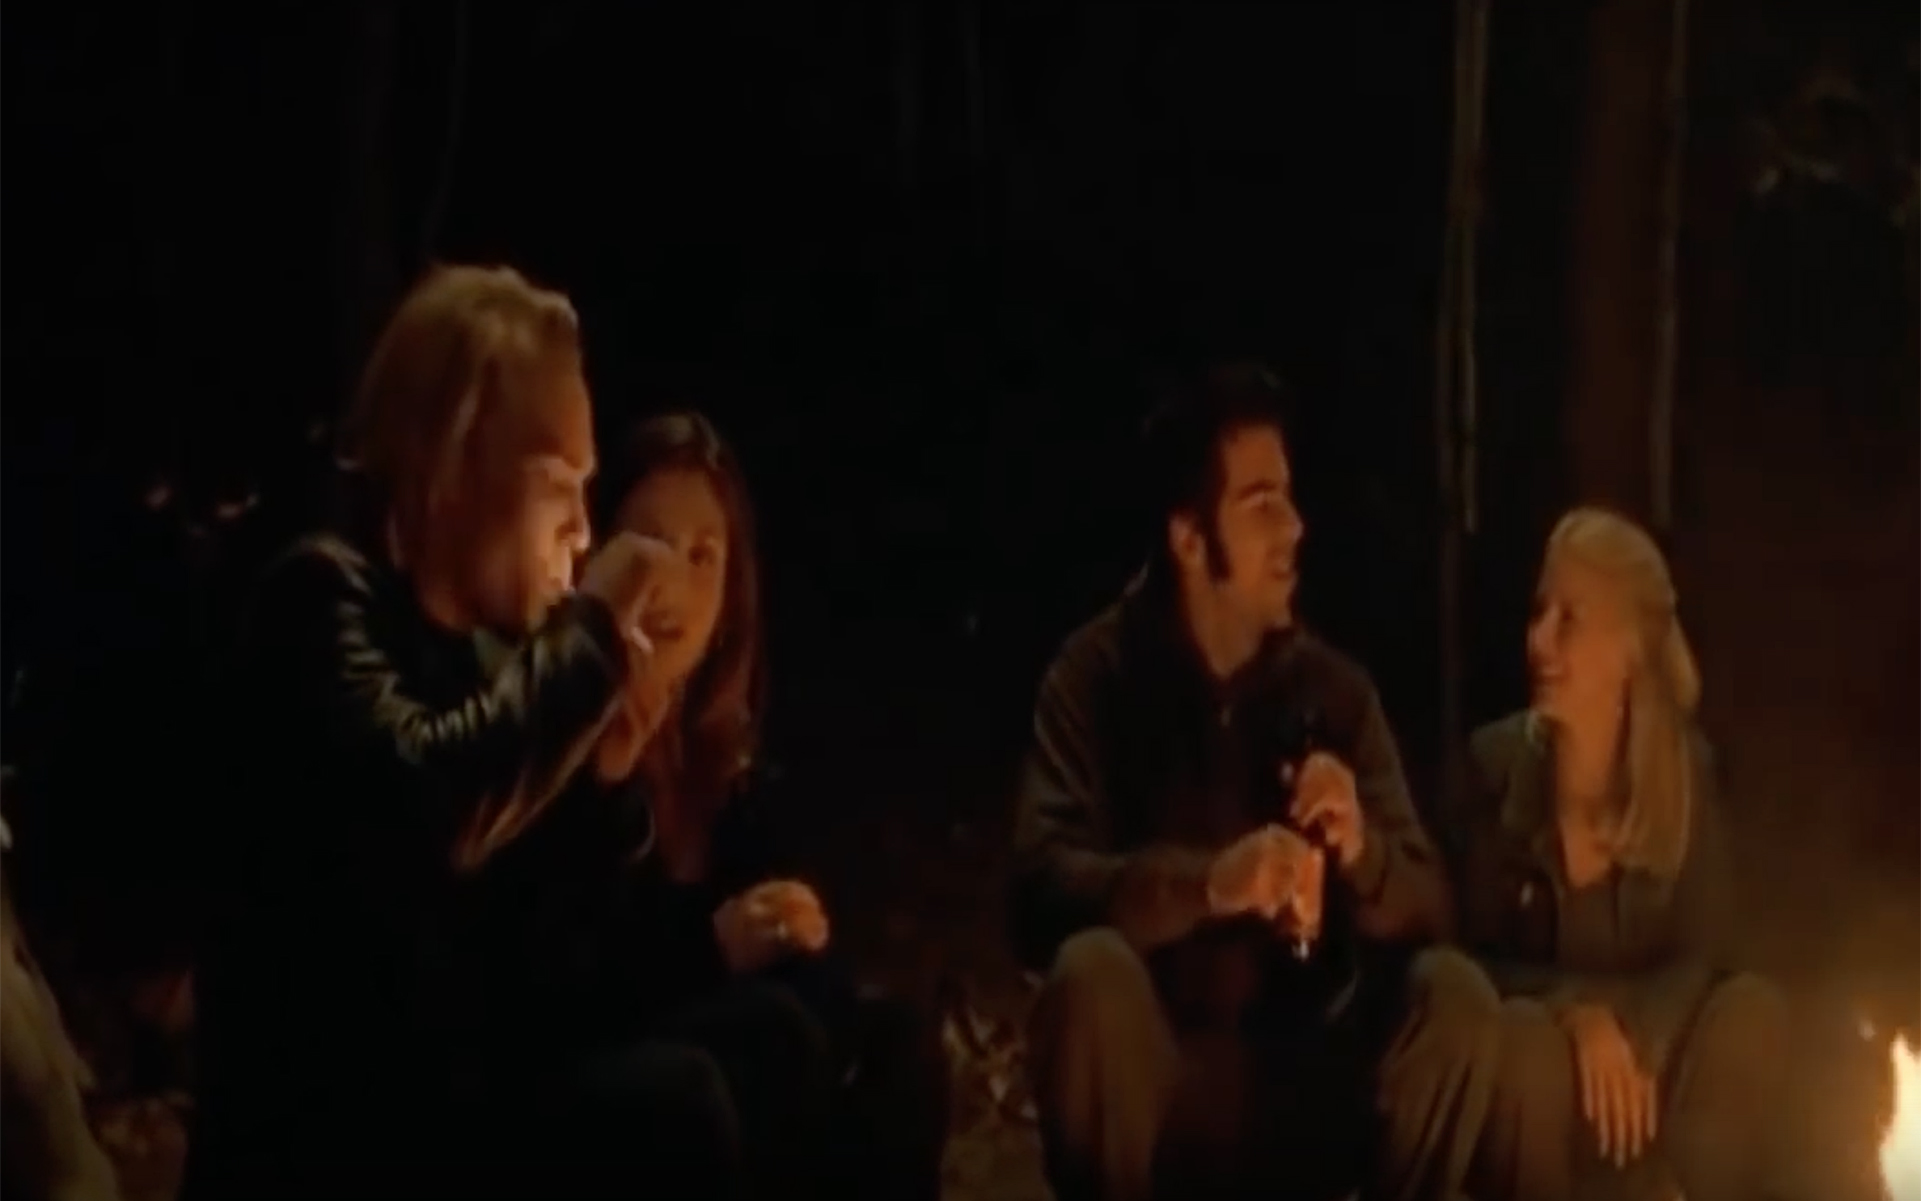 Stoners in the movie Cabin Fever